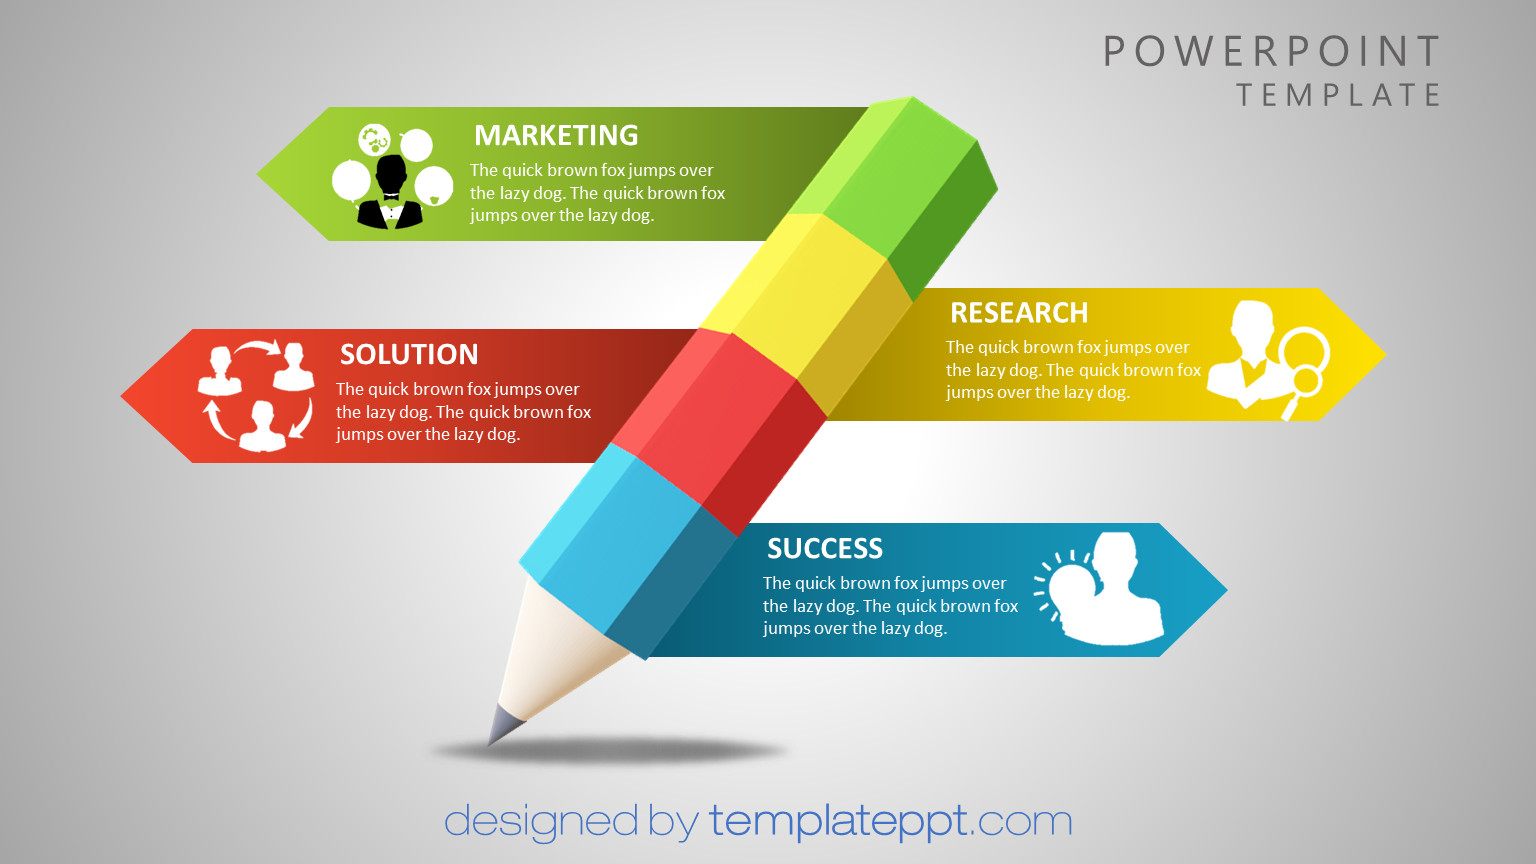 3D animated PowerPoint templates free using Paint